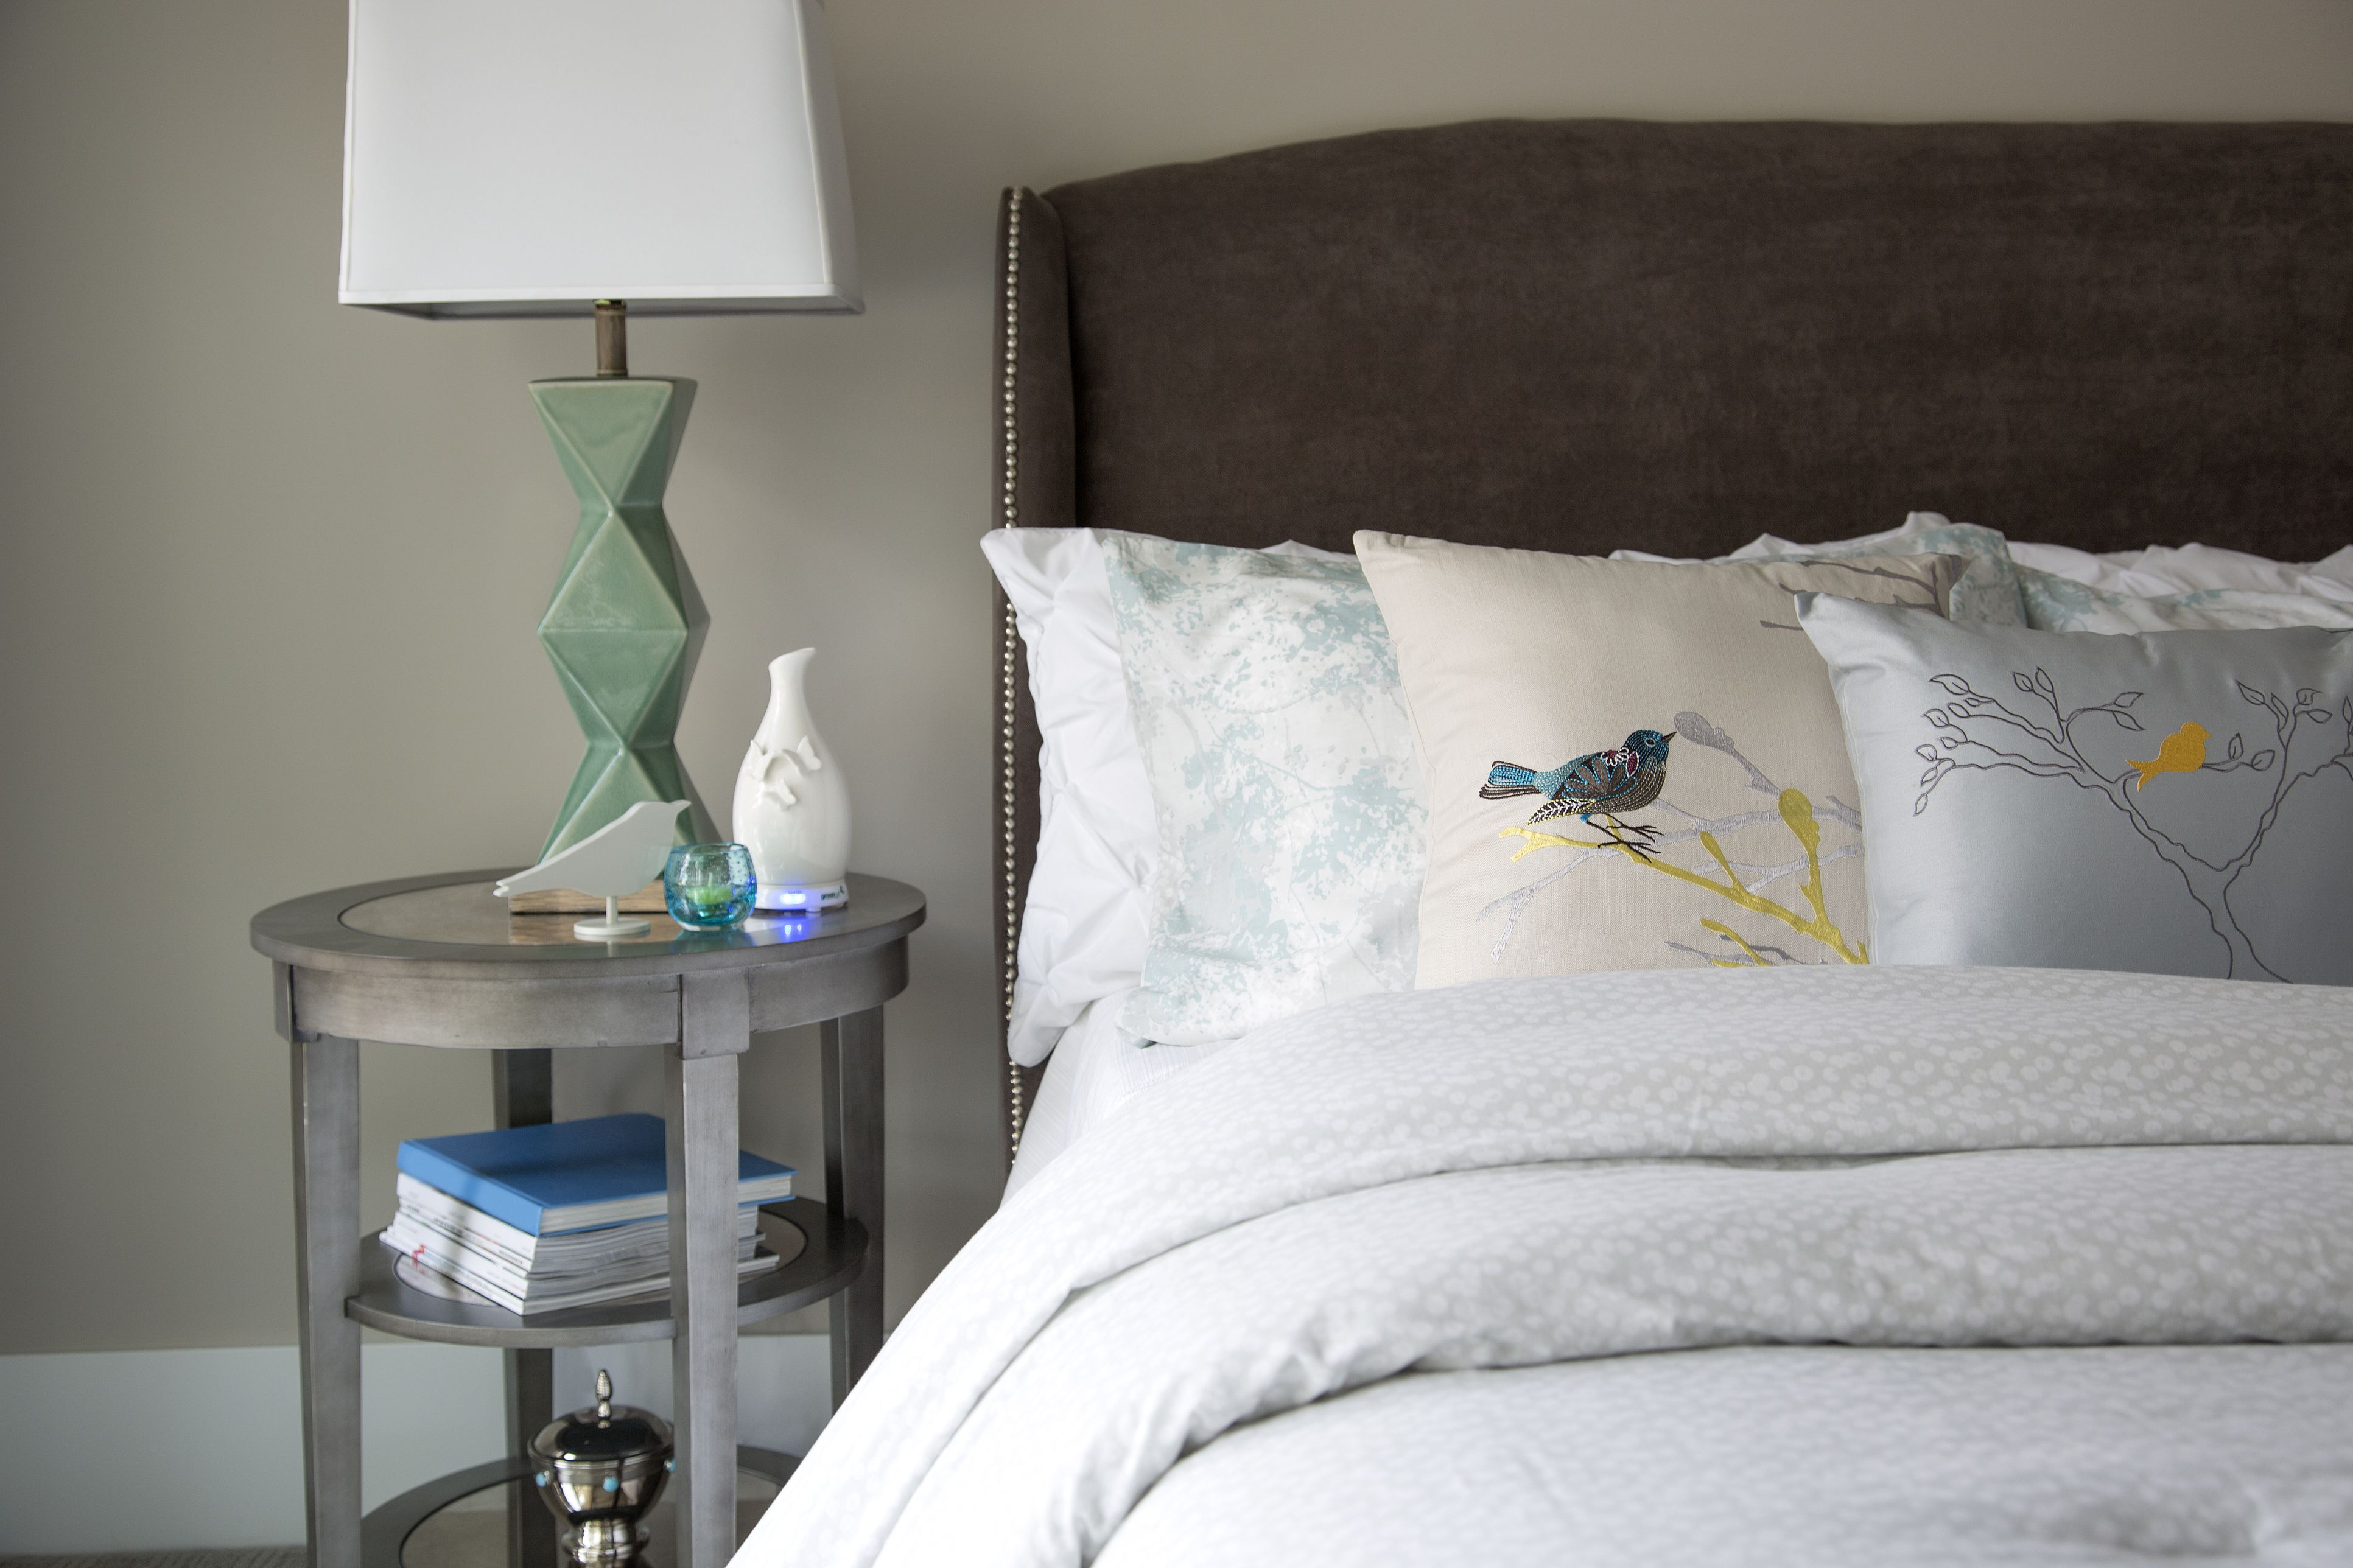 The 7 Best Wrinkle Free Sheets Of 2019